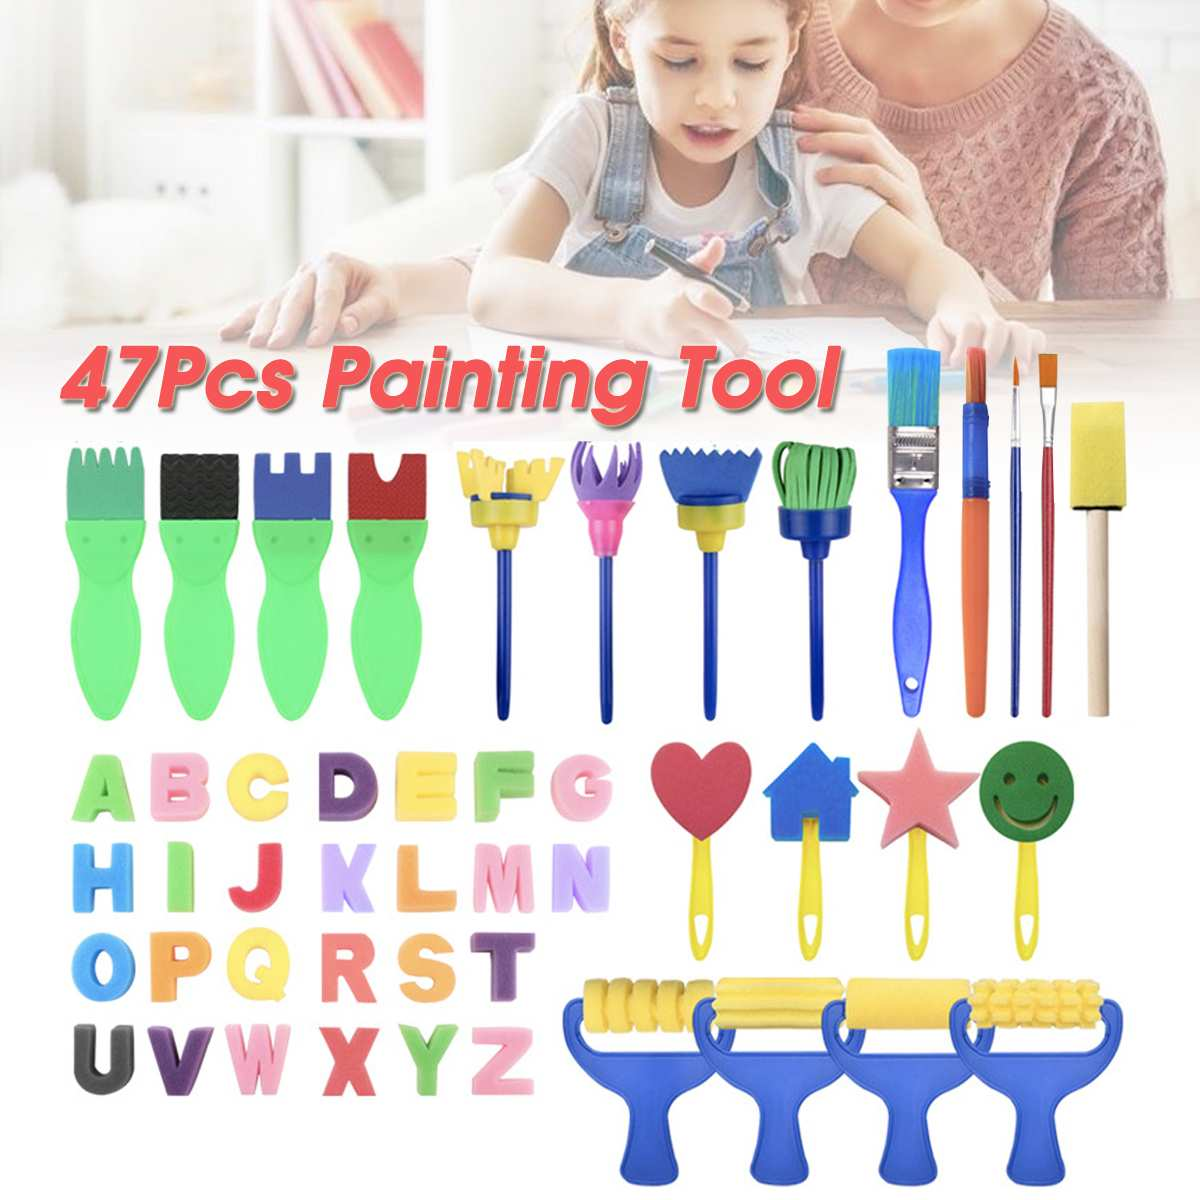 47pcs/set Diy Child Painting Tool Kit Roller Mold Sponge Drawing Writing Brush Mini Pattern Mold Toy Kids Gifts Merry Christmas